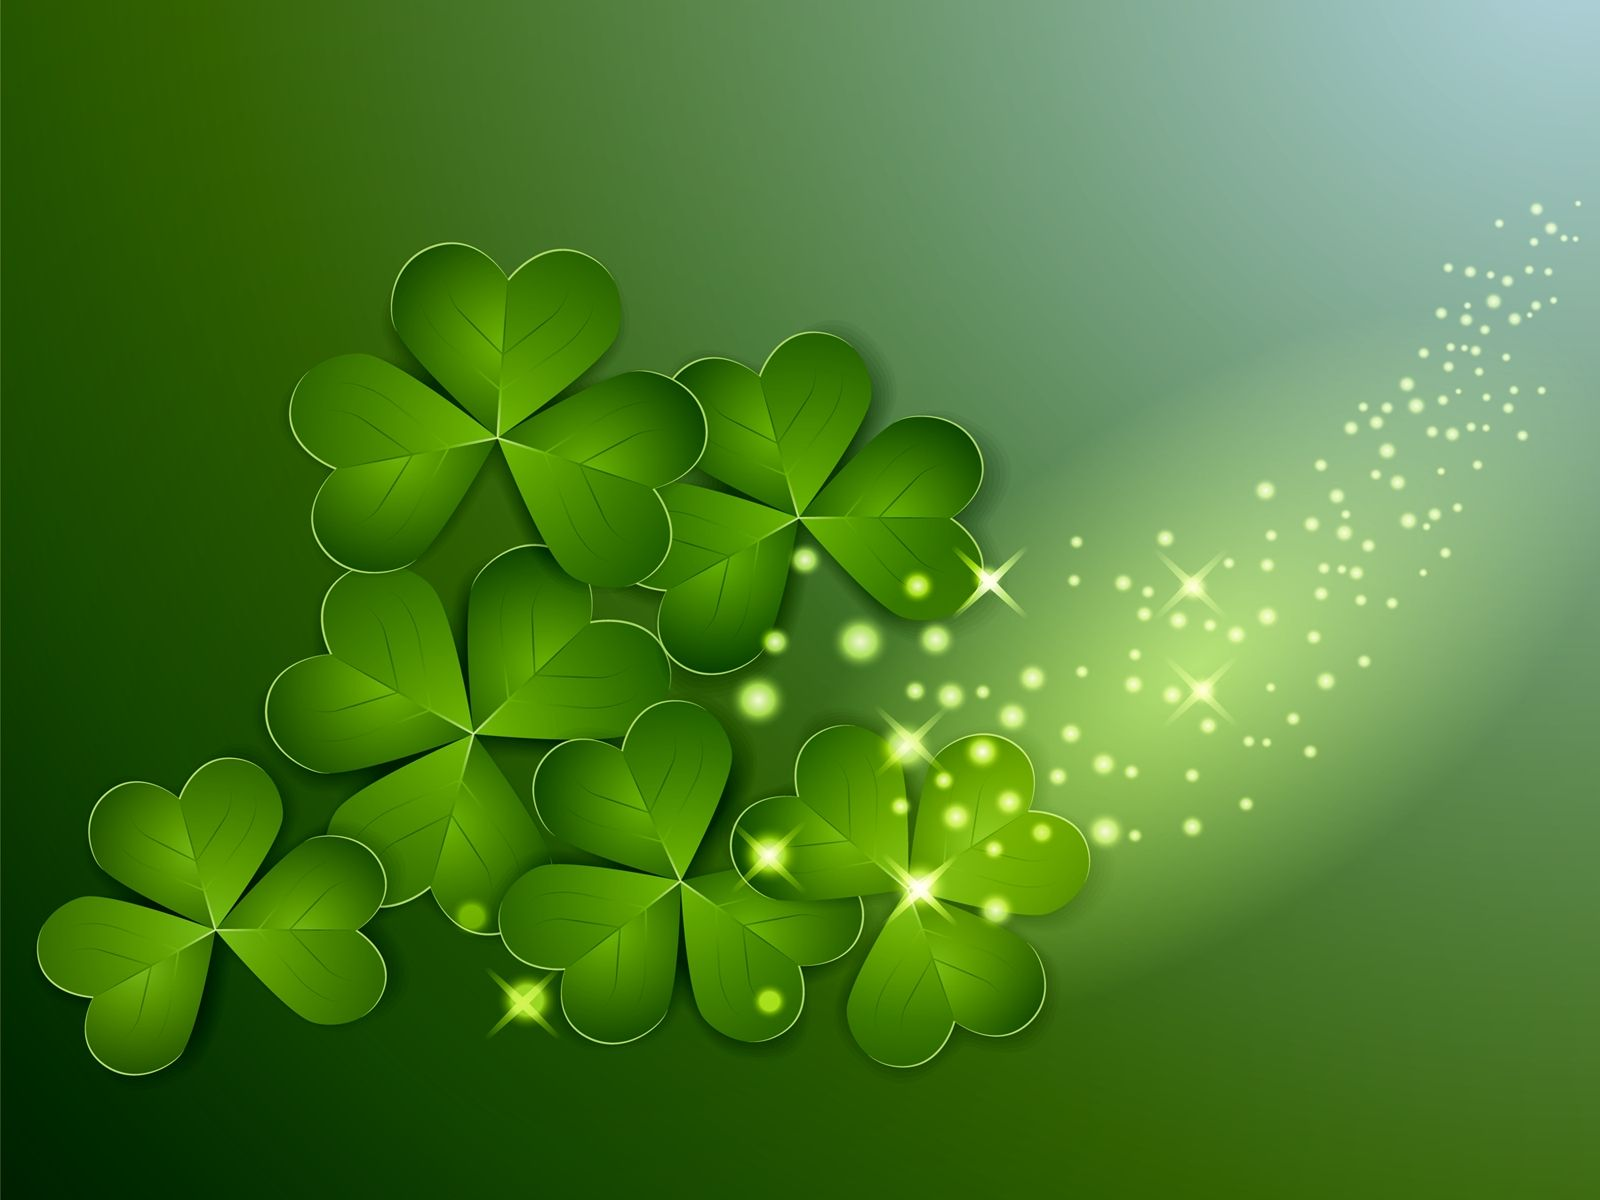 Saint Patricks Day Wallpaper Backgrounds St Patricks Day